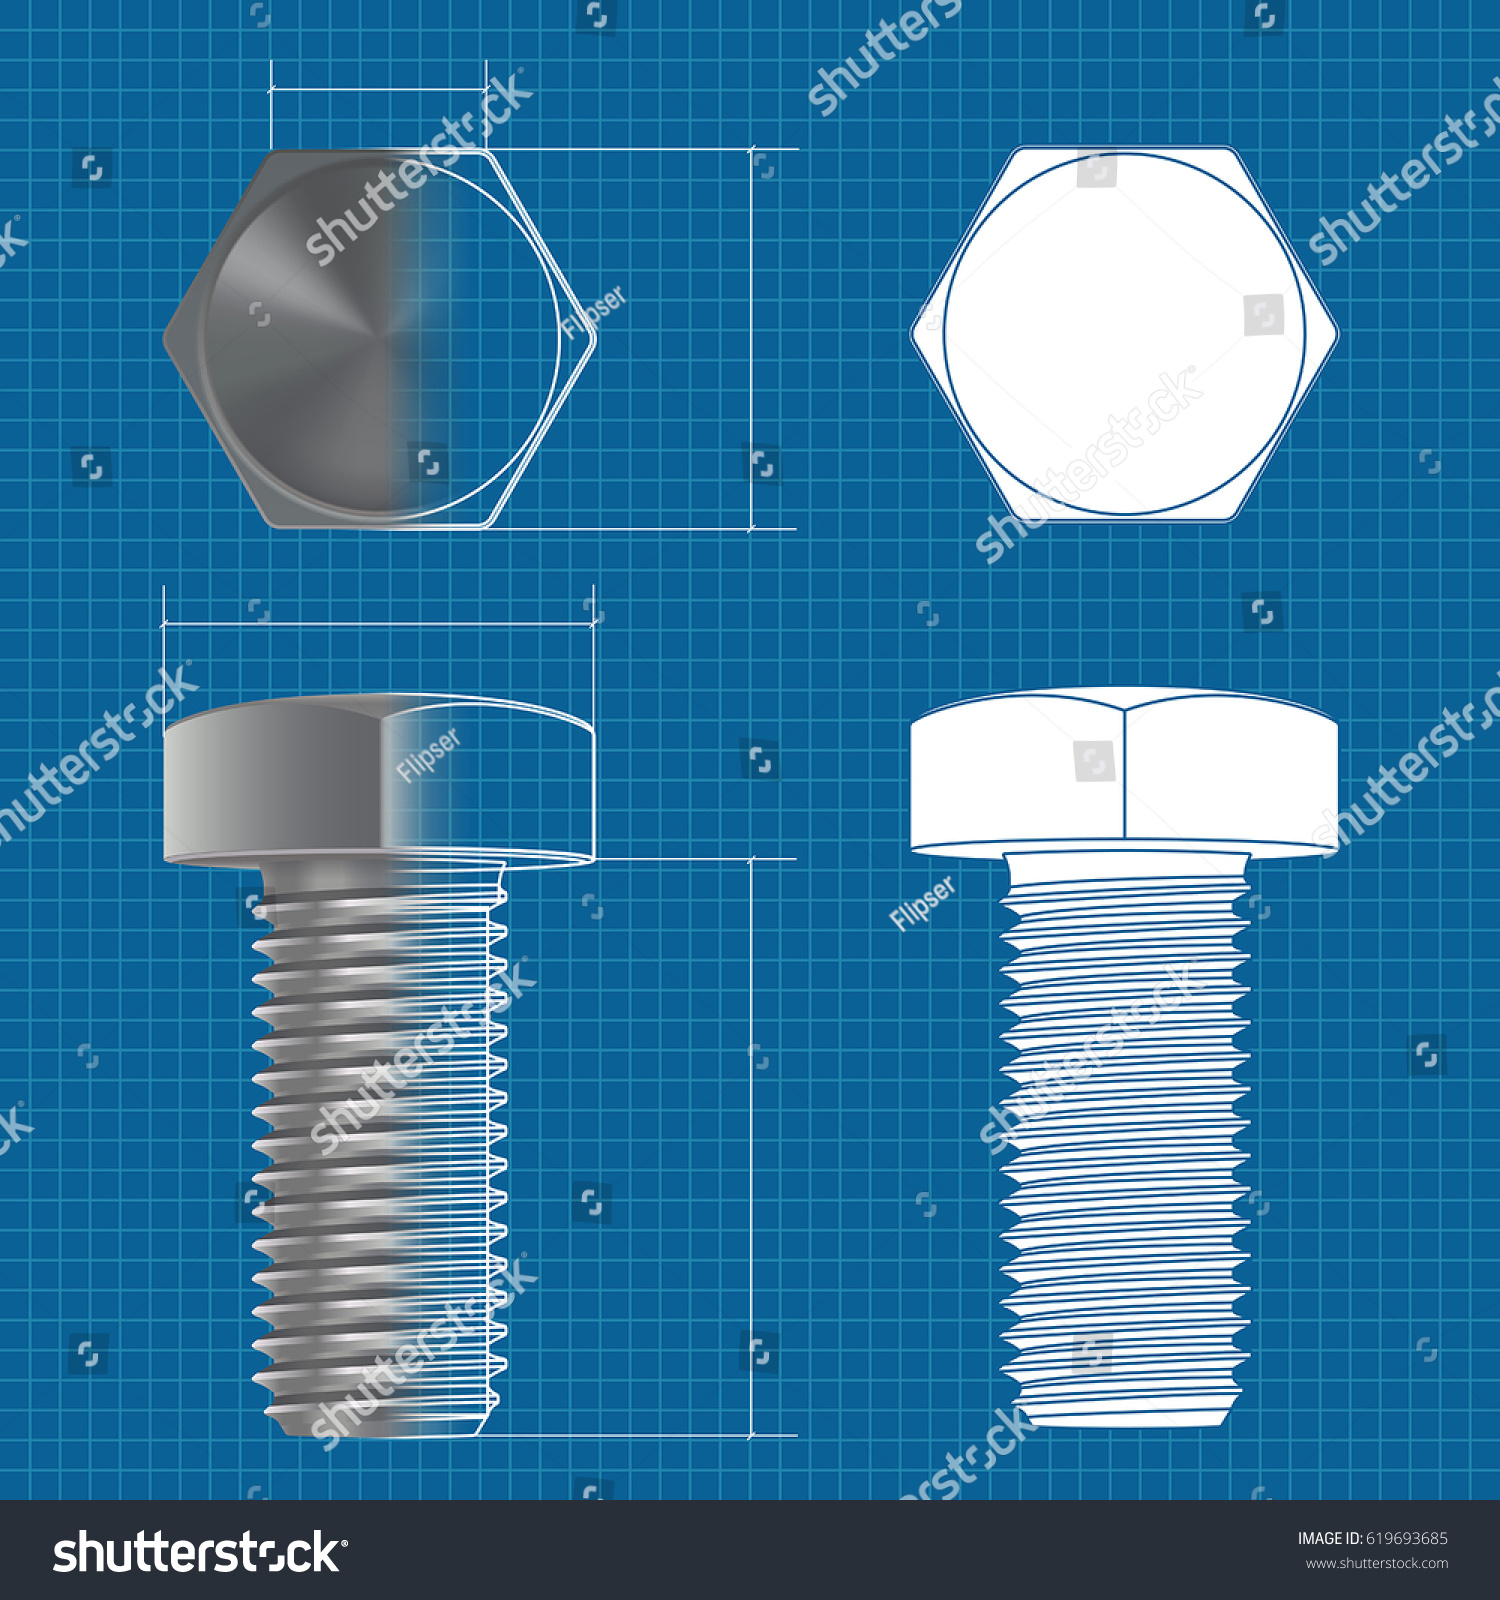 hight resolution of metal hex bolt vector 3d illustration and flat white icon on blueprint background